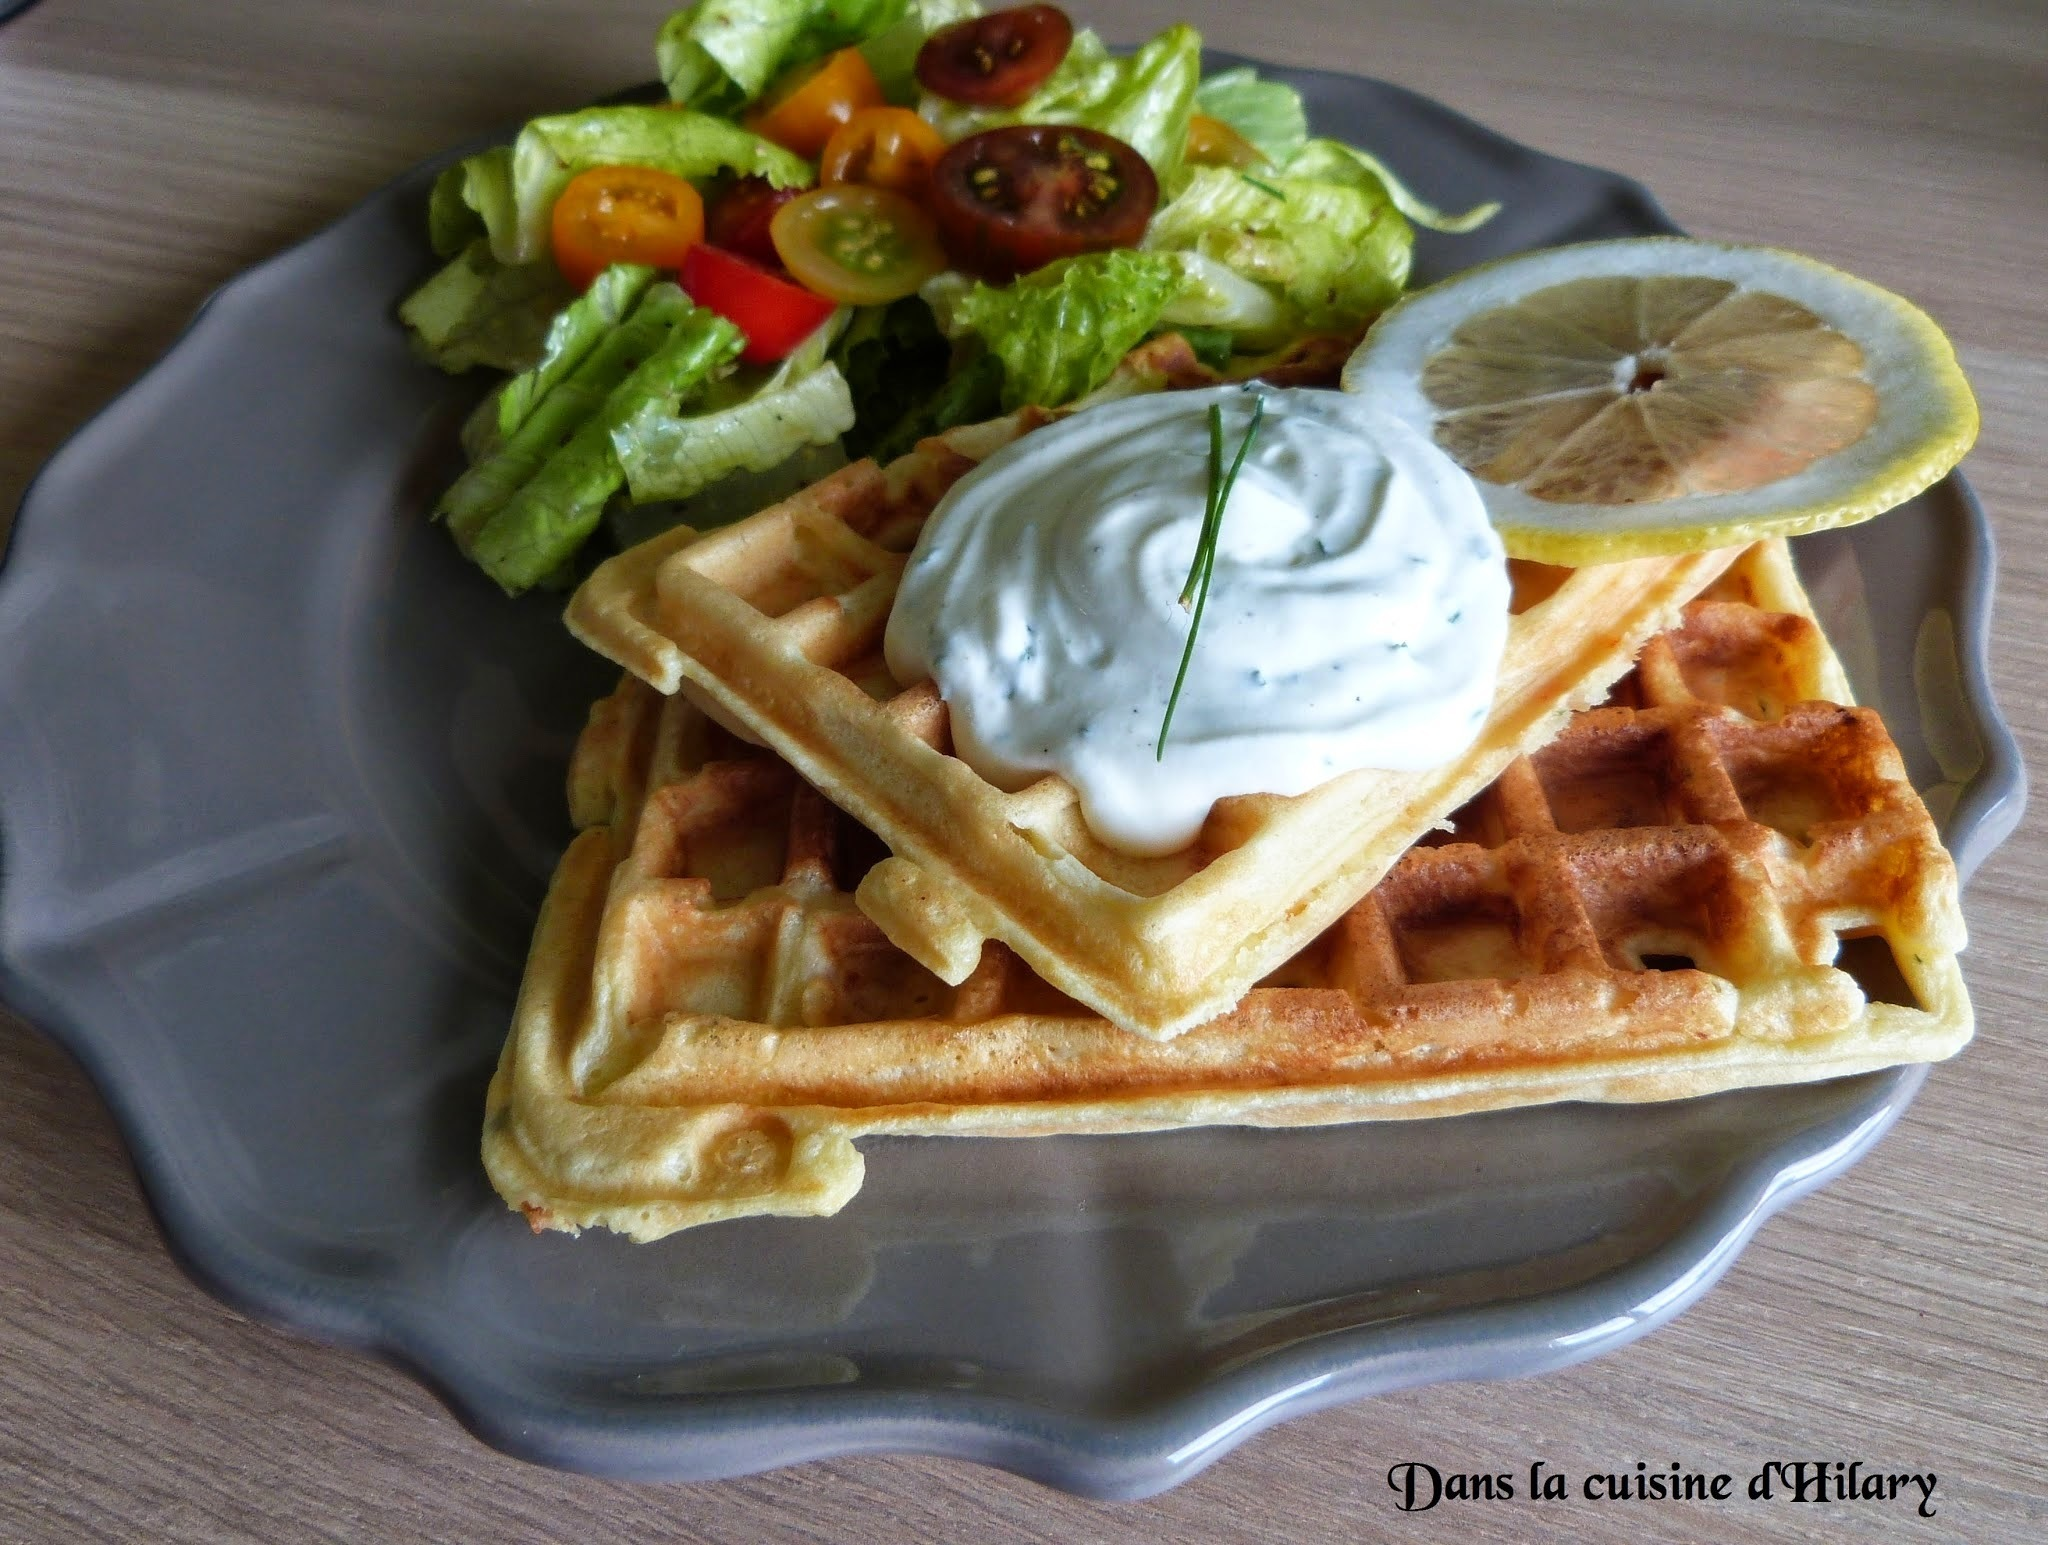 Gaufres au saumon fumé et fromage ail et fines herbes et sa chantilly citronnée / Smolked salmon and garlic and herbs cream cheese waffle and its lemon chantilly